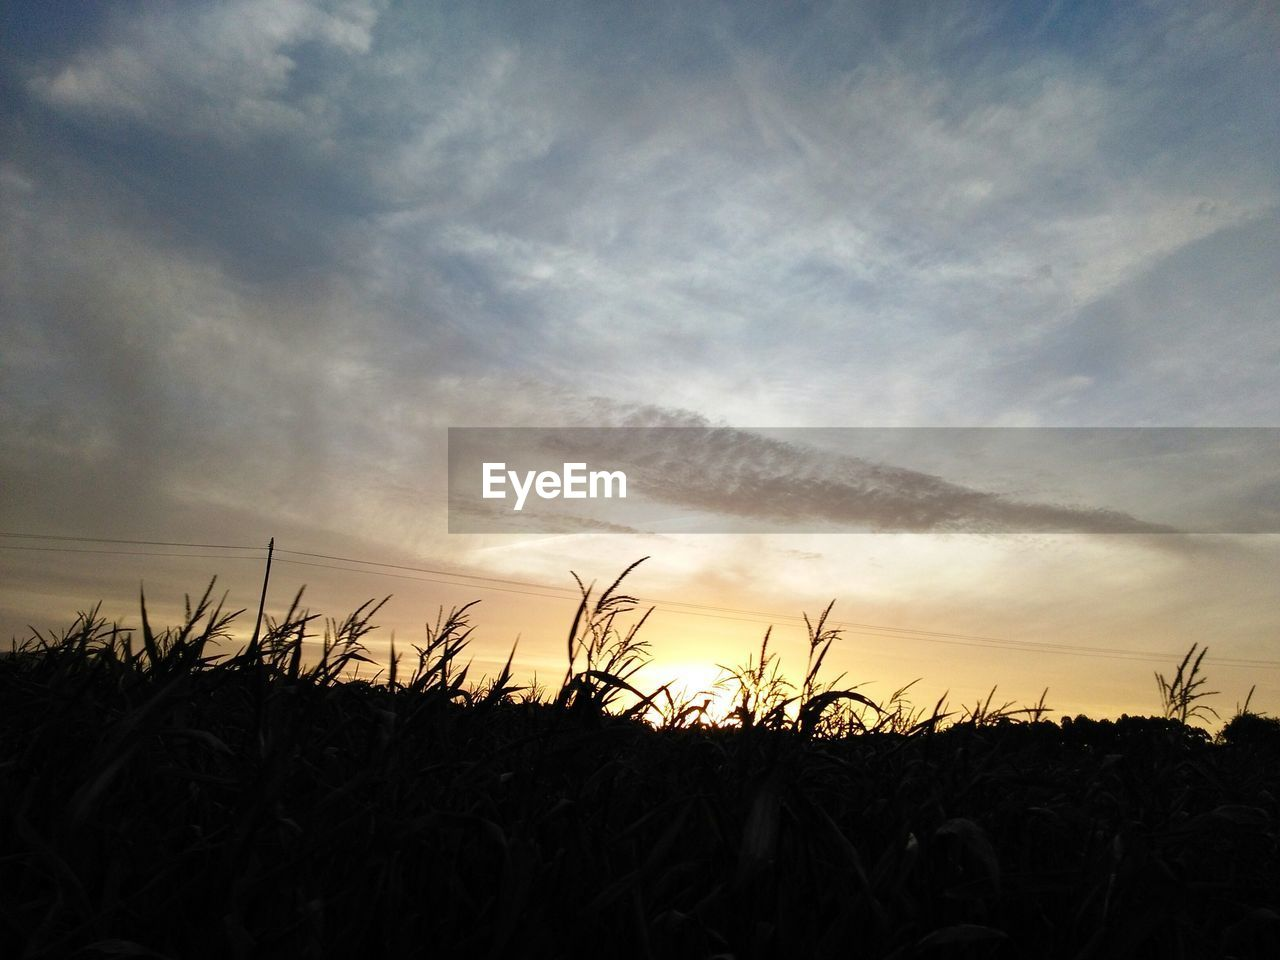 sunset, sky, silhouette, nature, scenics, tranquil scene, cloud - sky, tranquility, field, beauty in nature, no people, landscape, outdoors, growth, plant, rural scene, grass, day, close-up